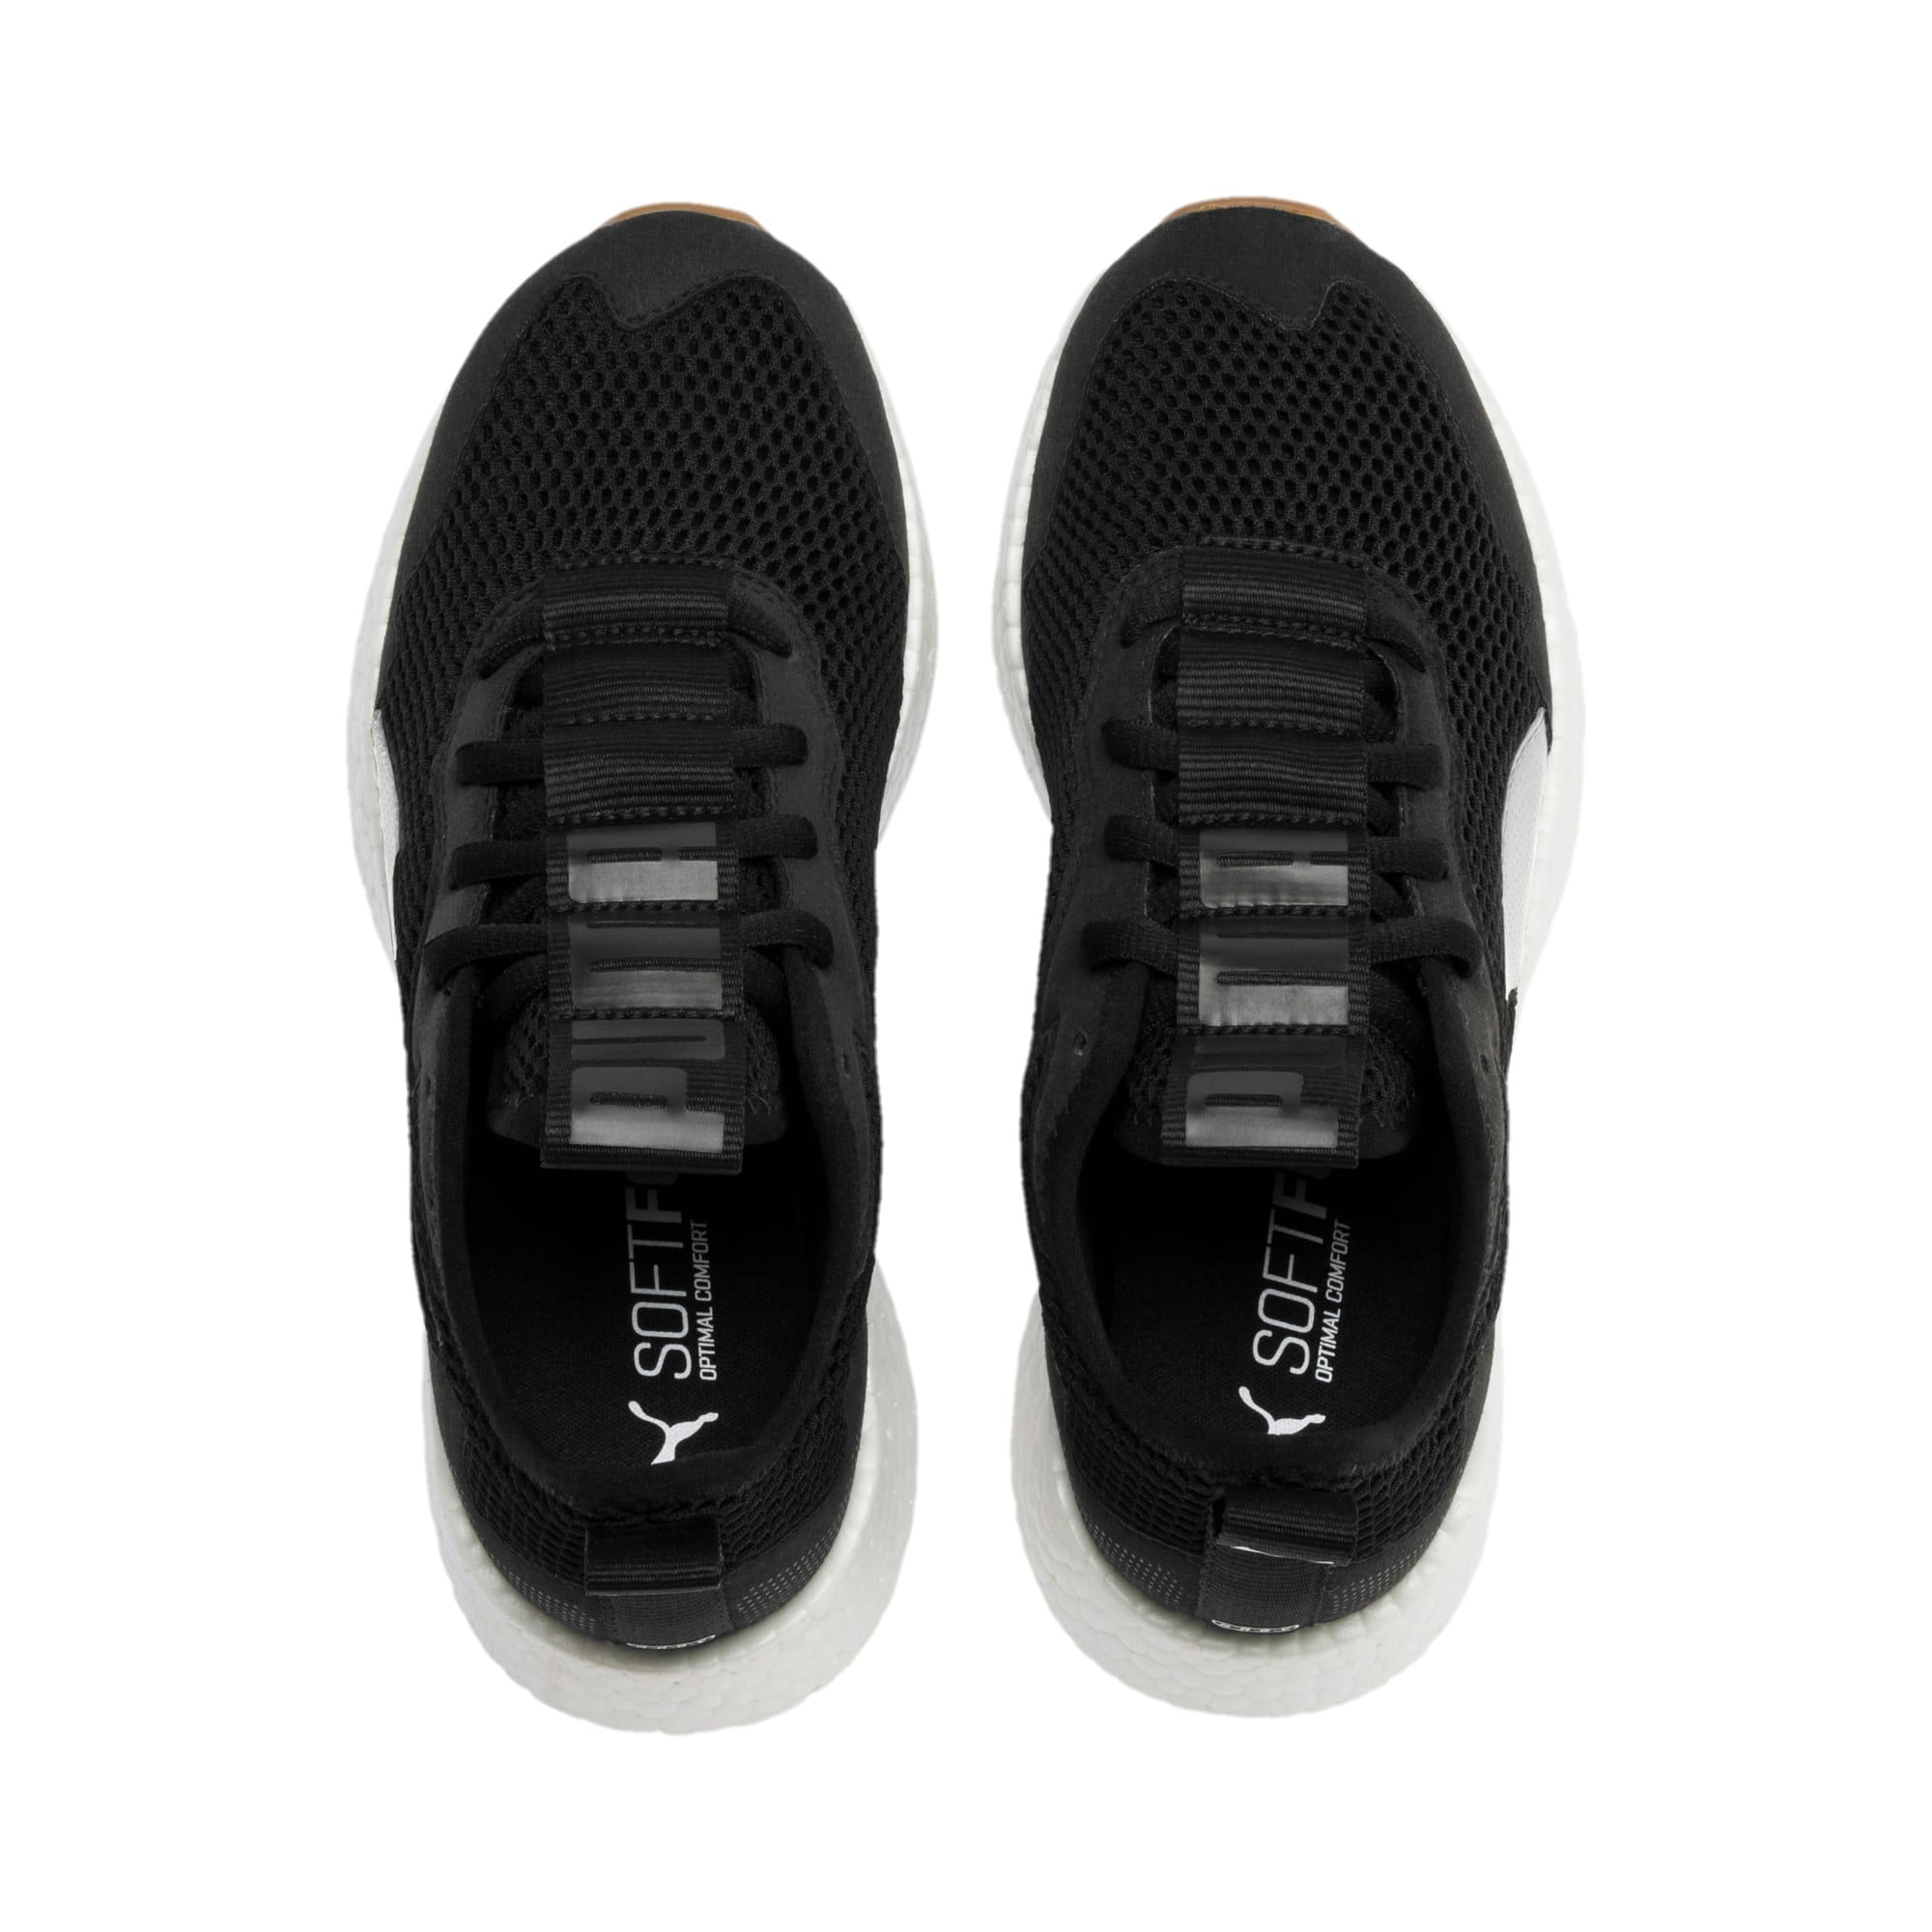 Thumbnail 6 of Chaussure de course NRGY Neko Skim Youth, Puma Black-Puma White, medium